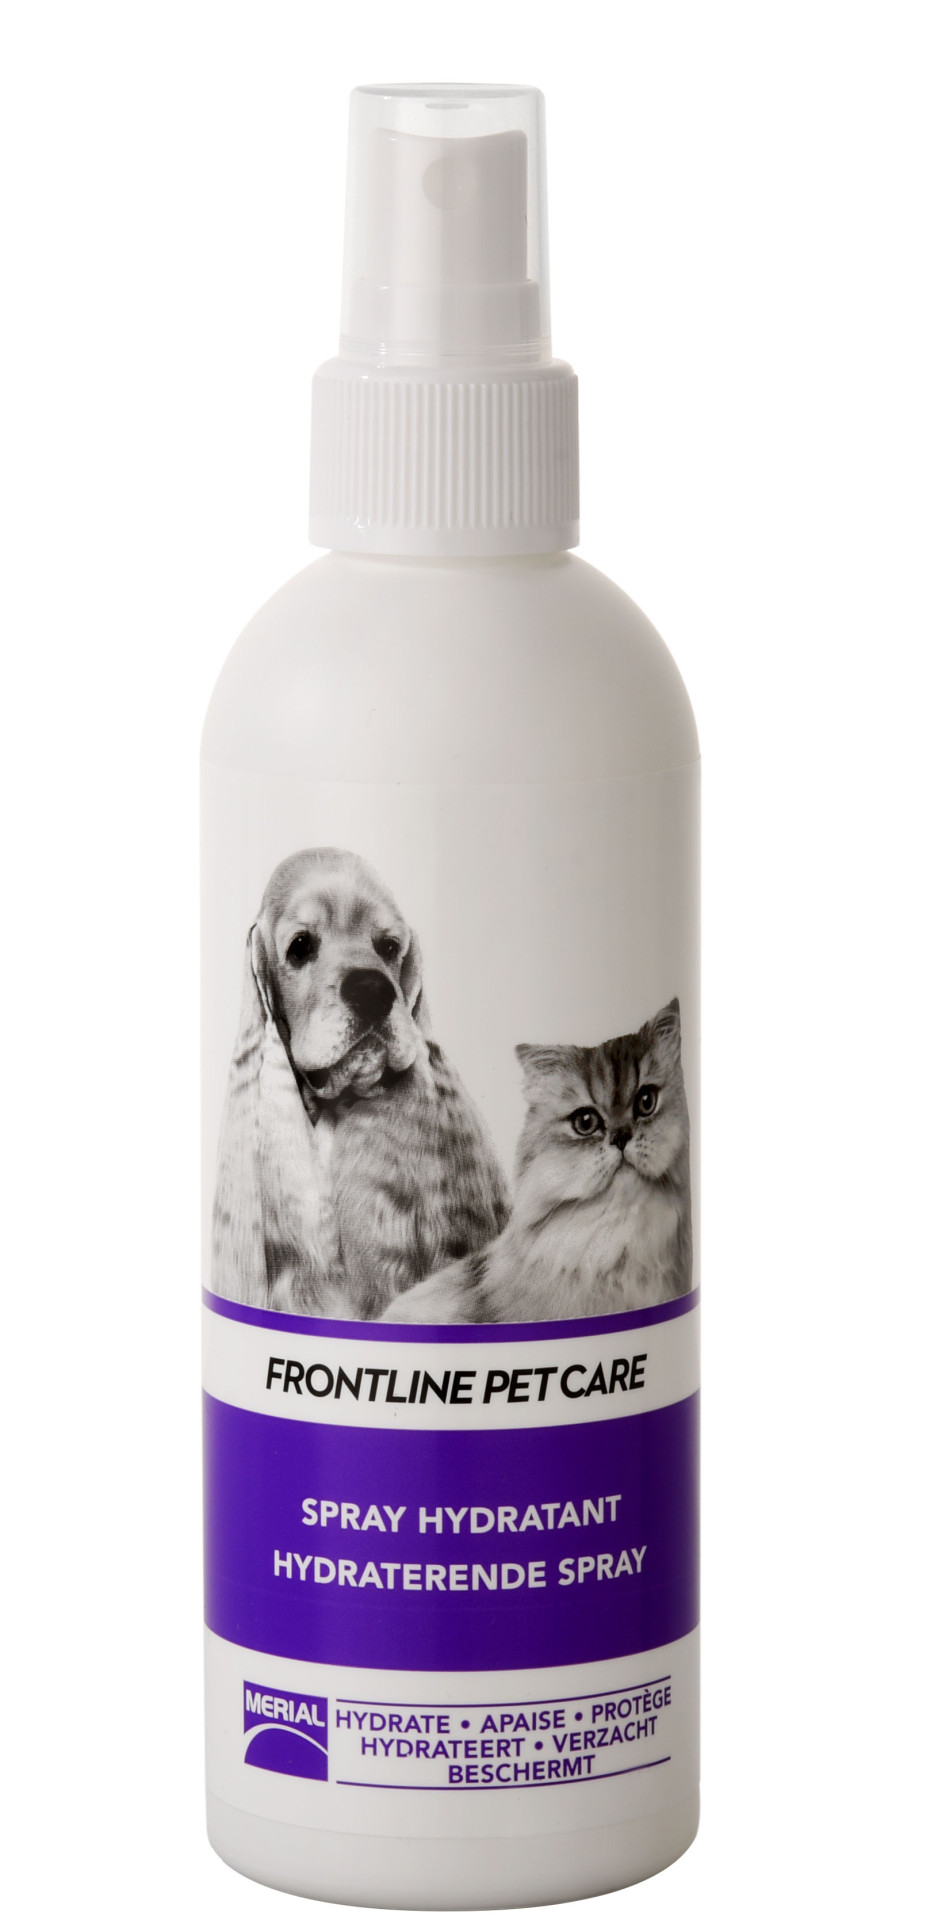 Frontline Pet Care hydraterende spray 150 ml